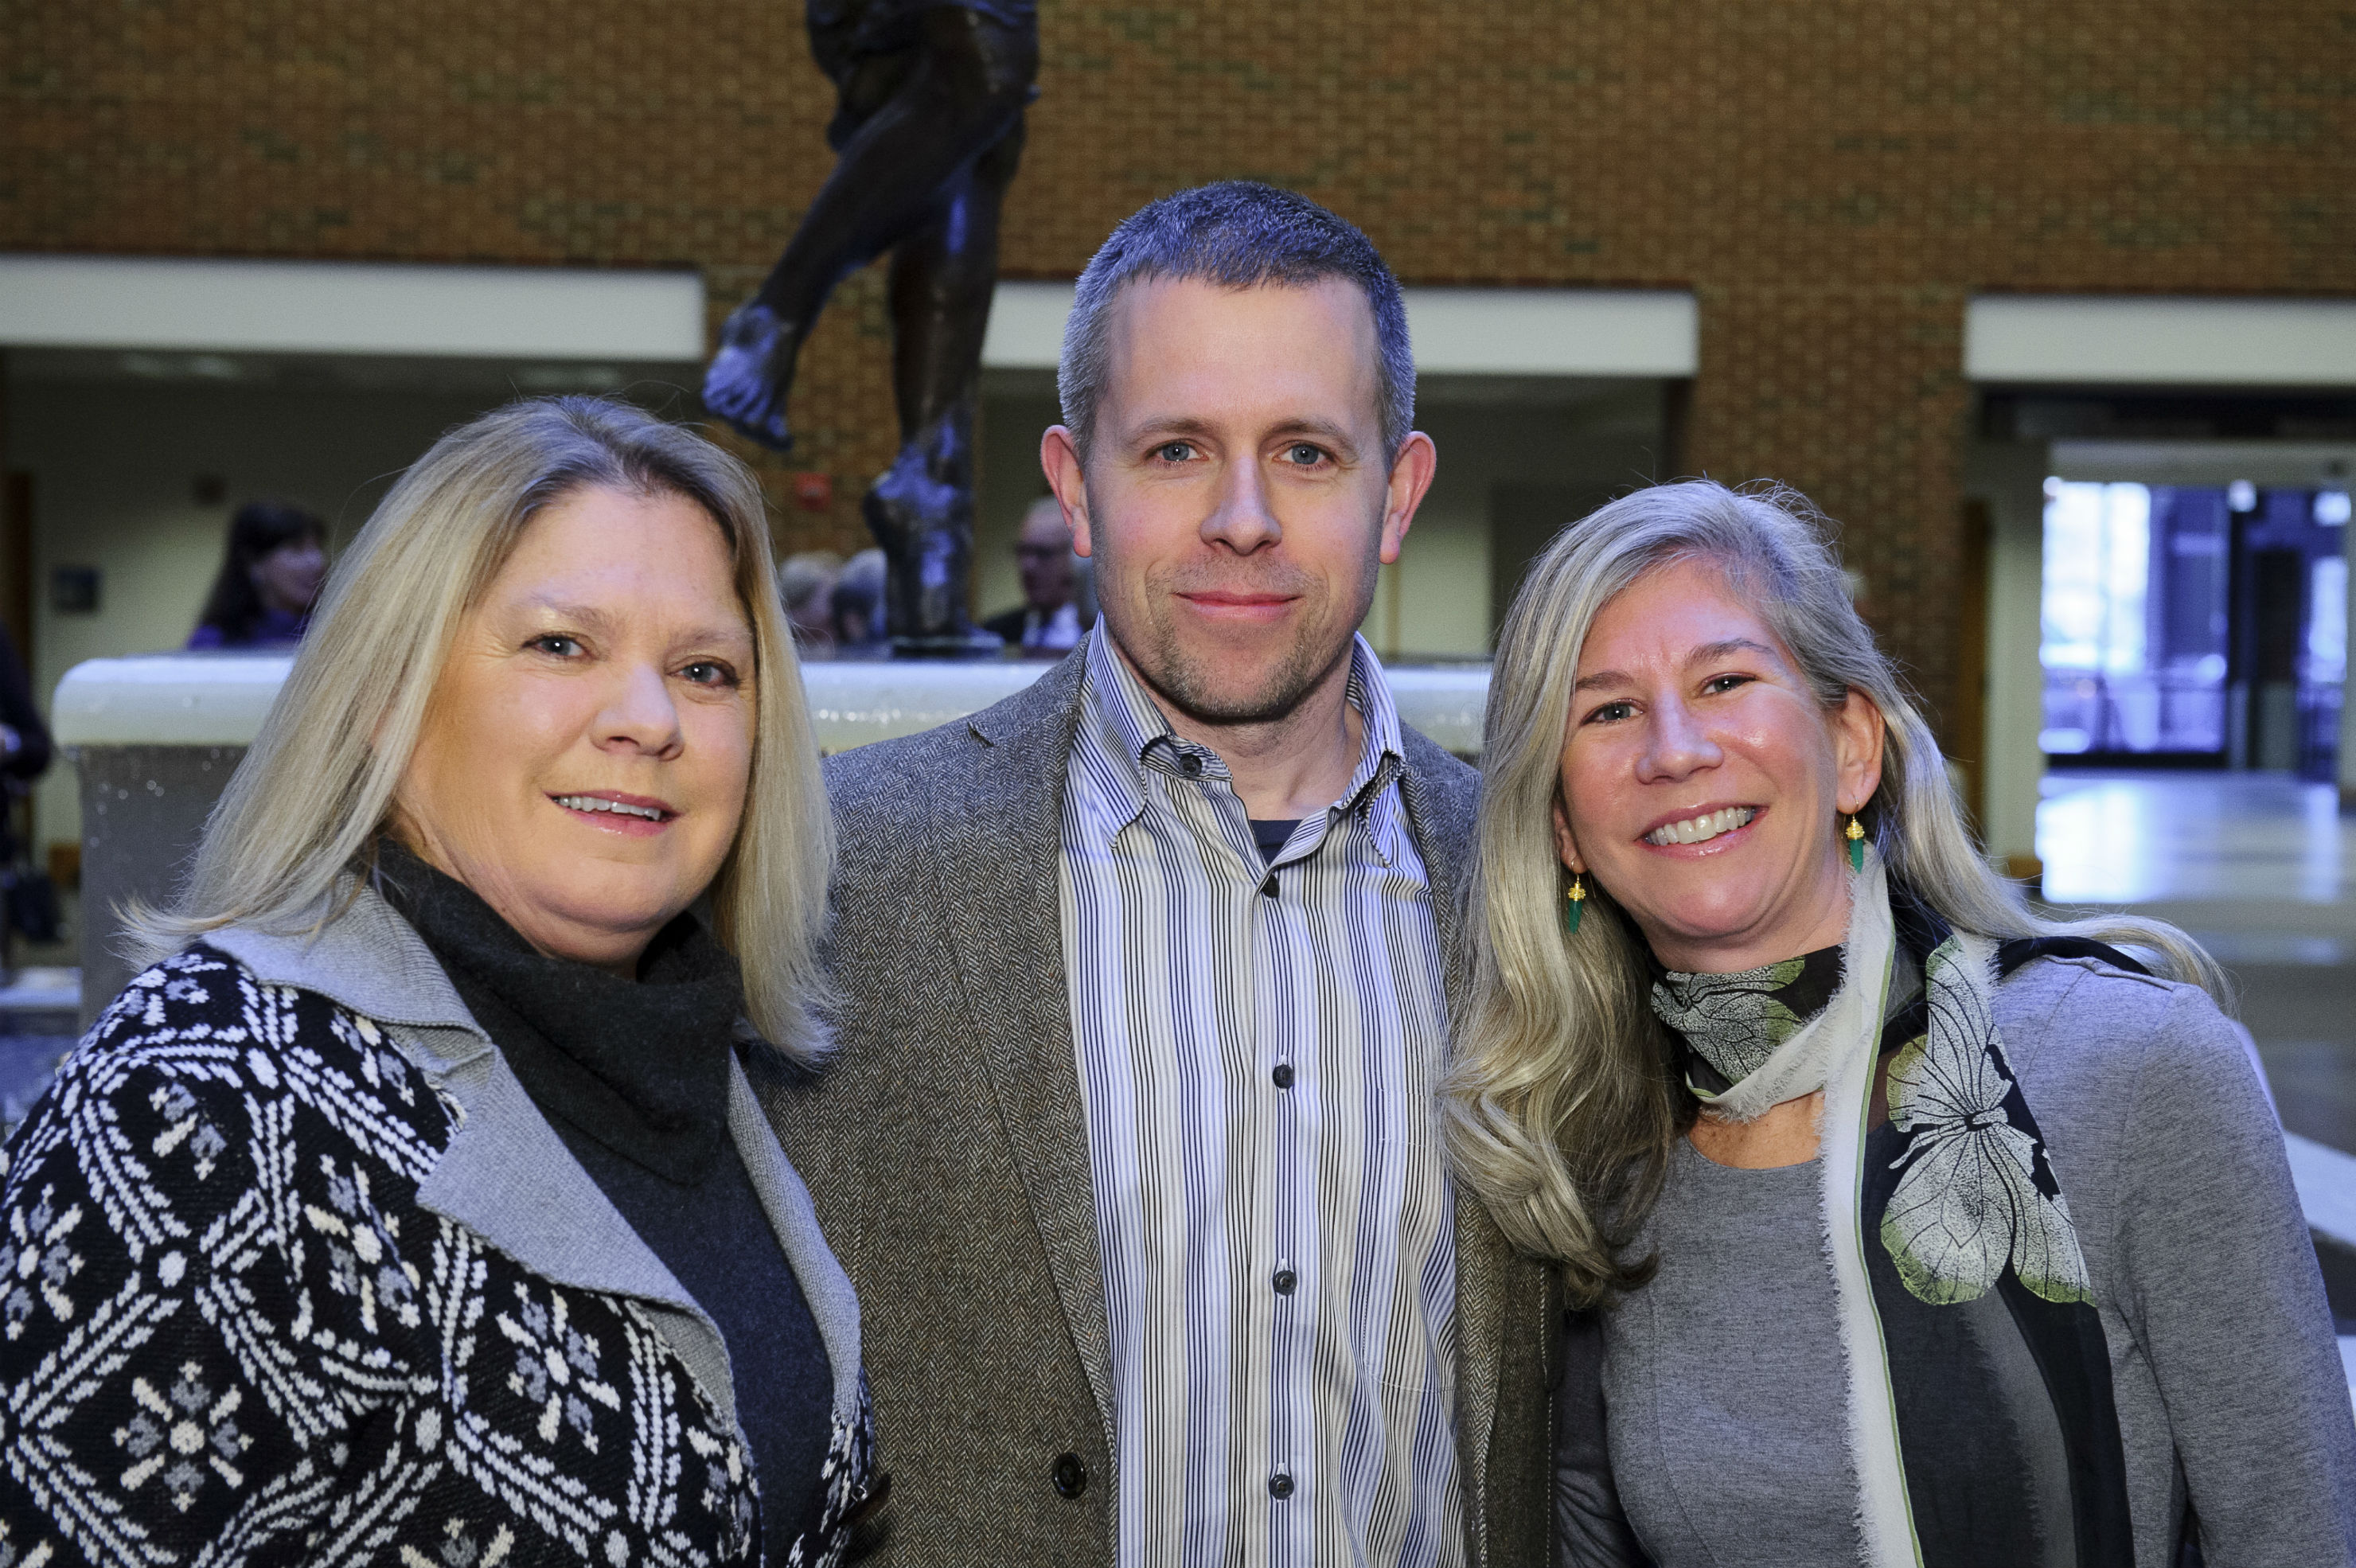 ACE 2014 co-chairs Debbie Hulick (left) and Susan J. White with artist Jonathan Rutledge